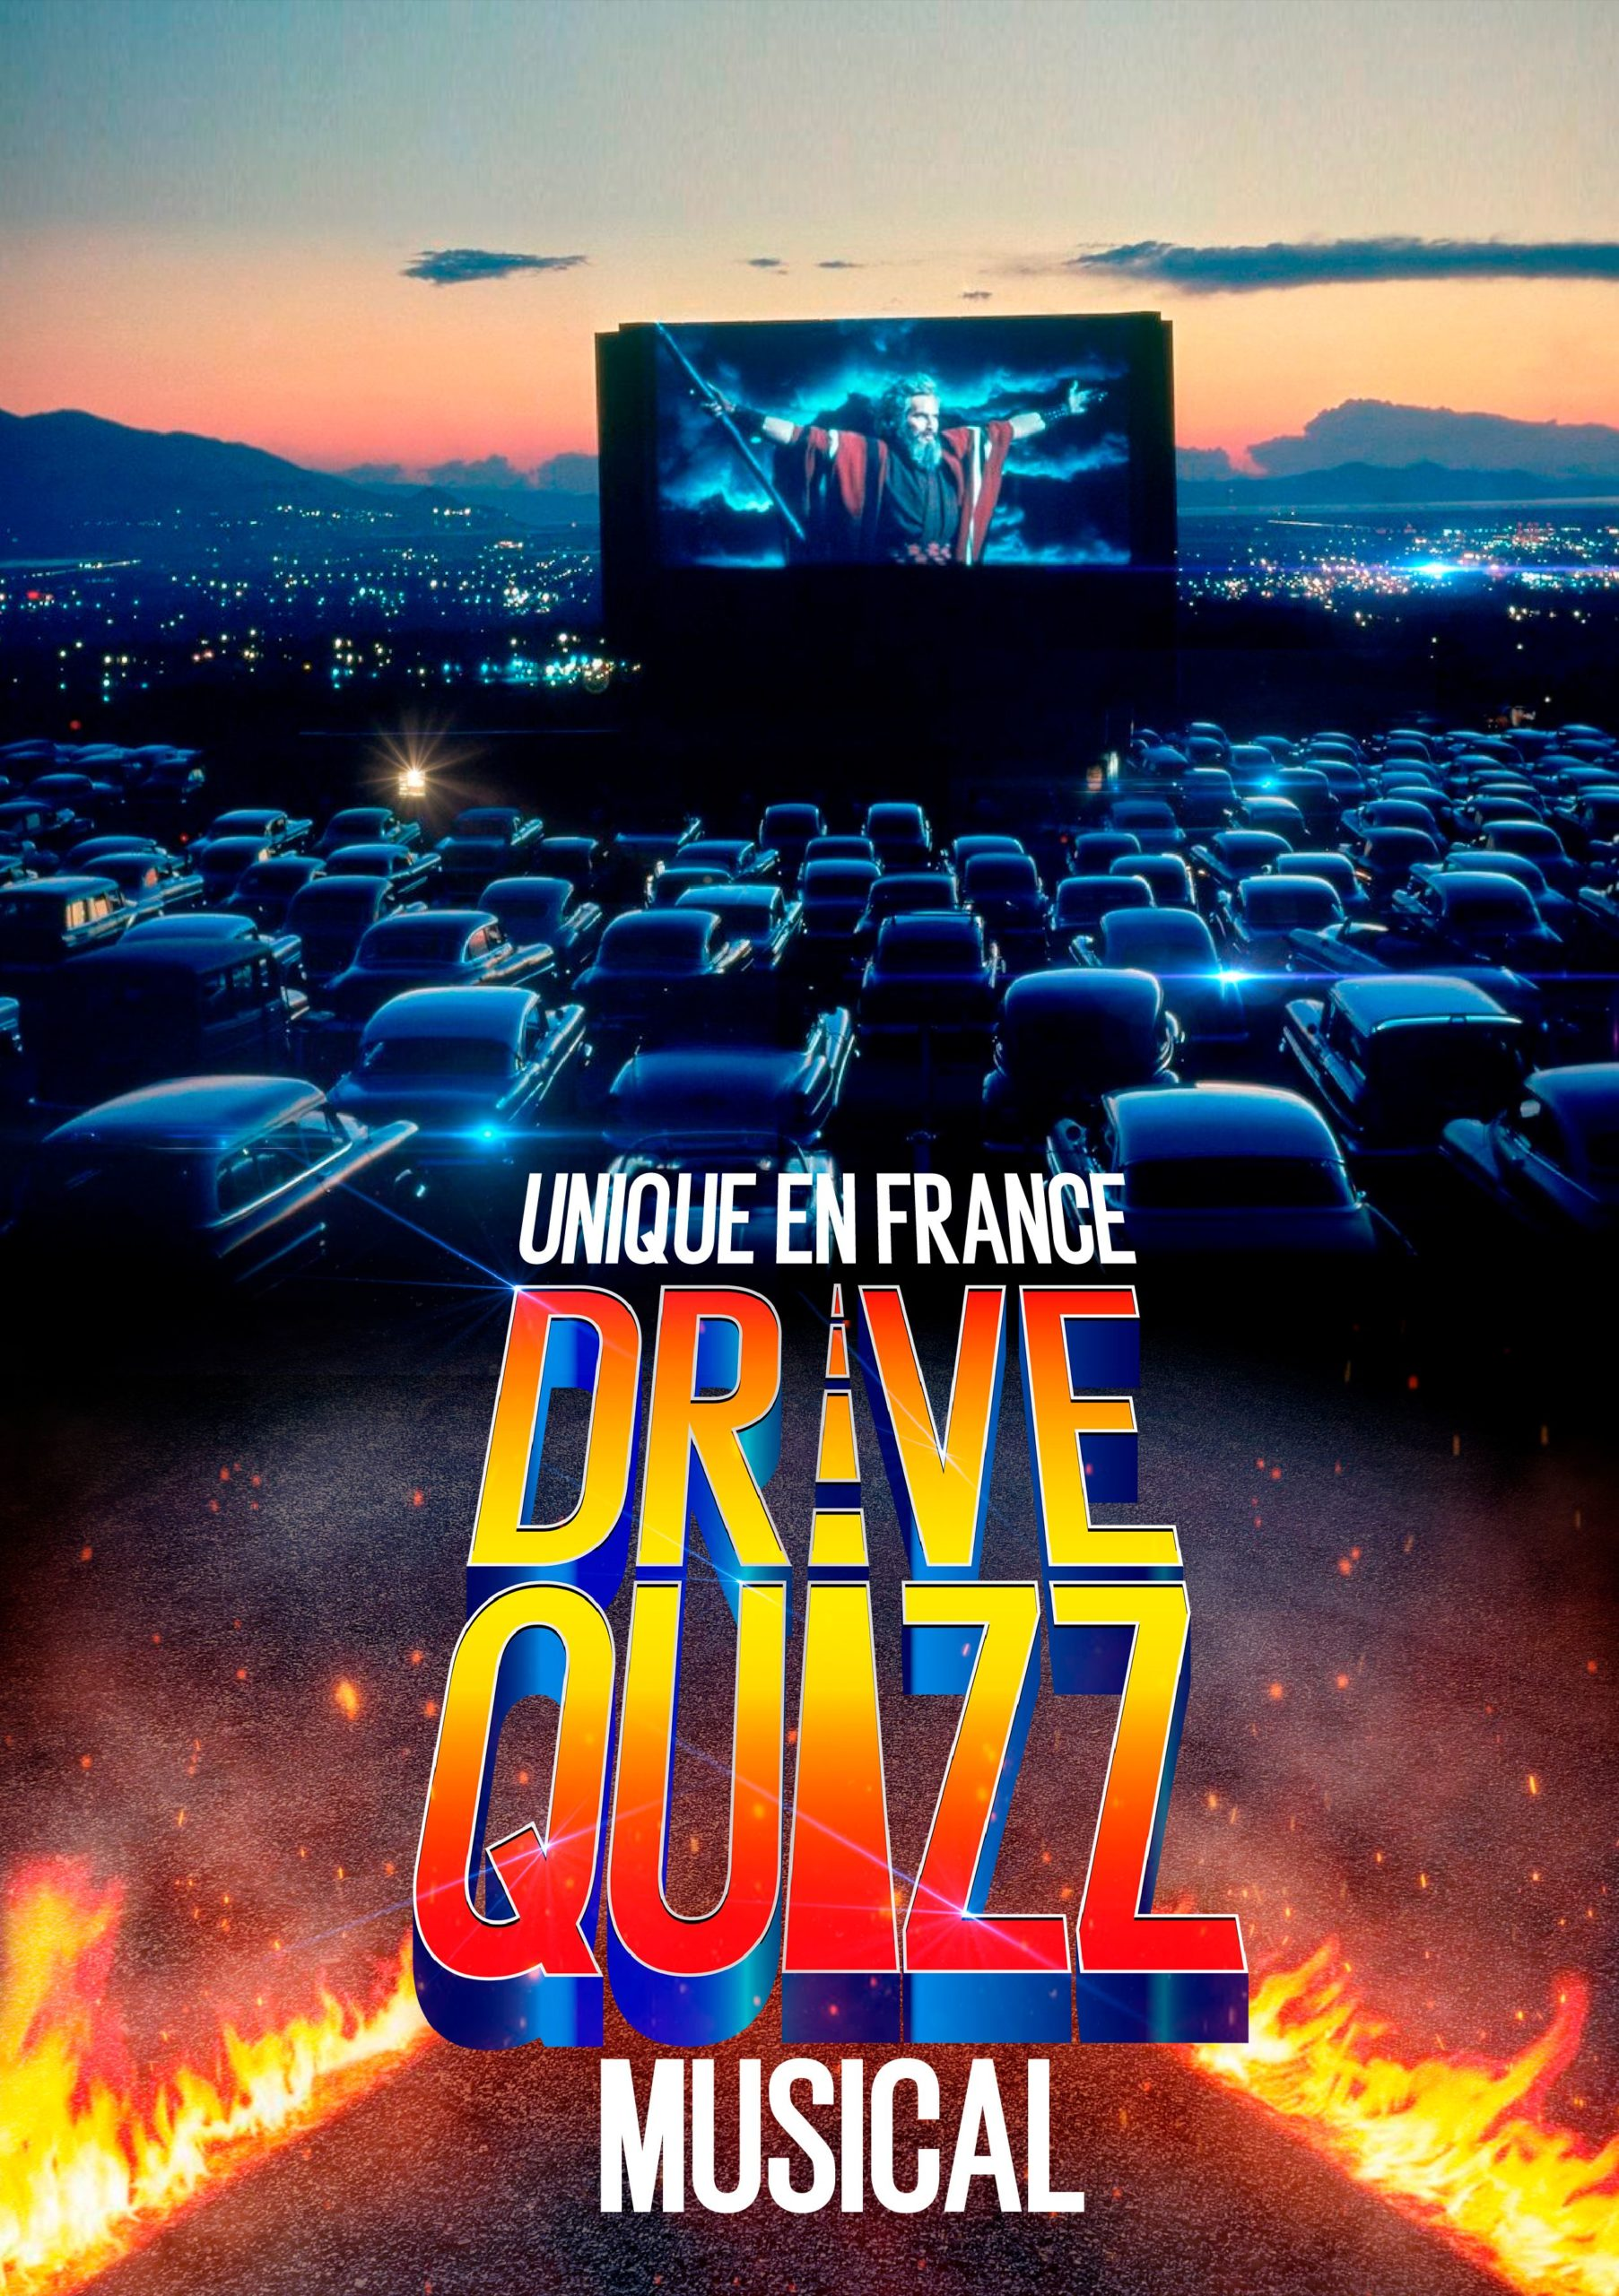 Drive Quizz Musical